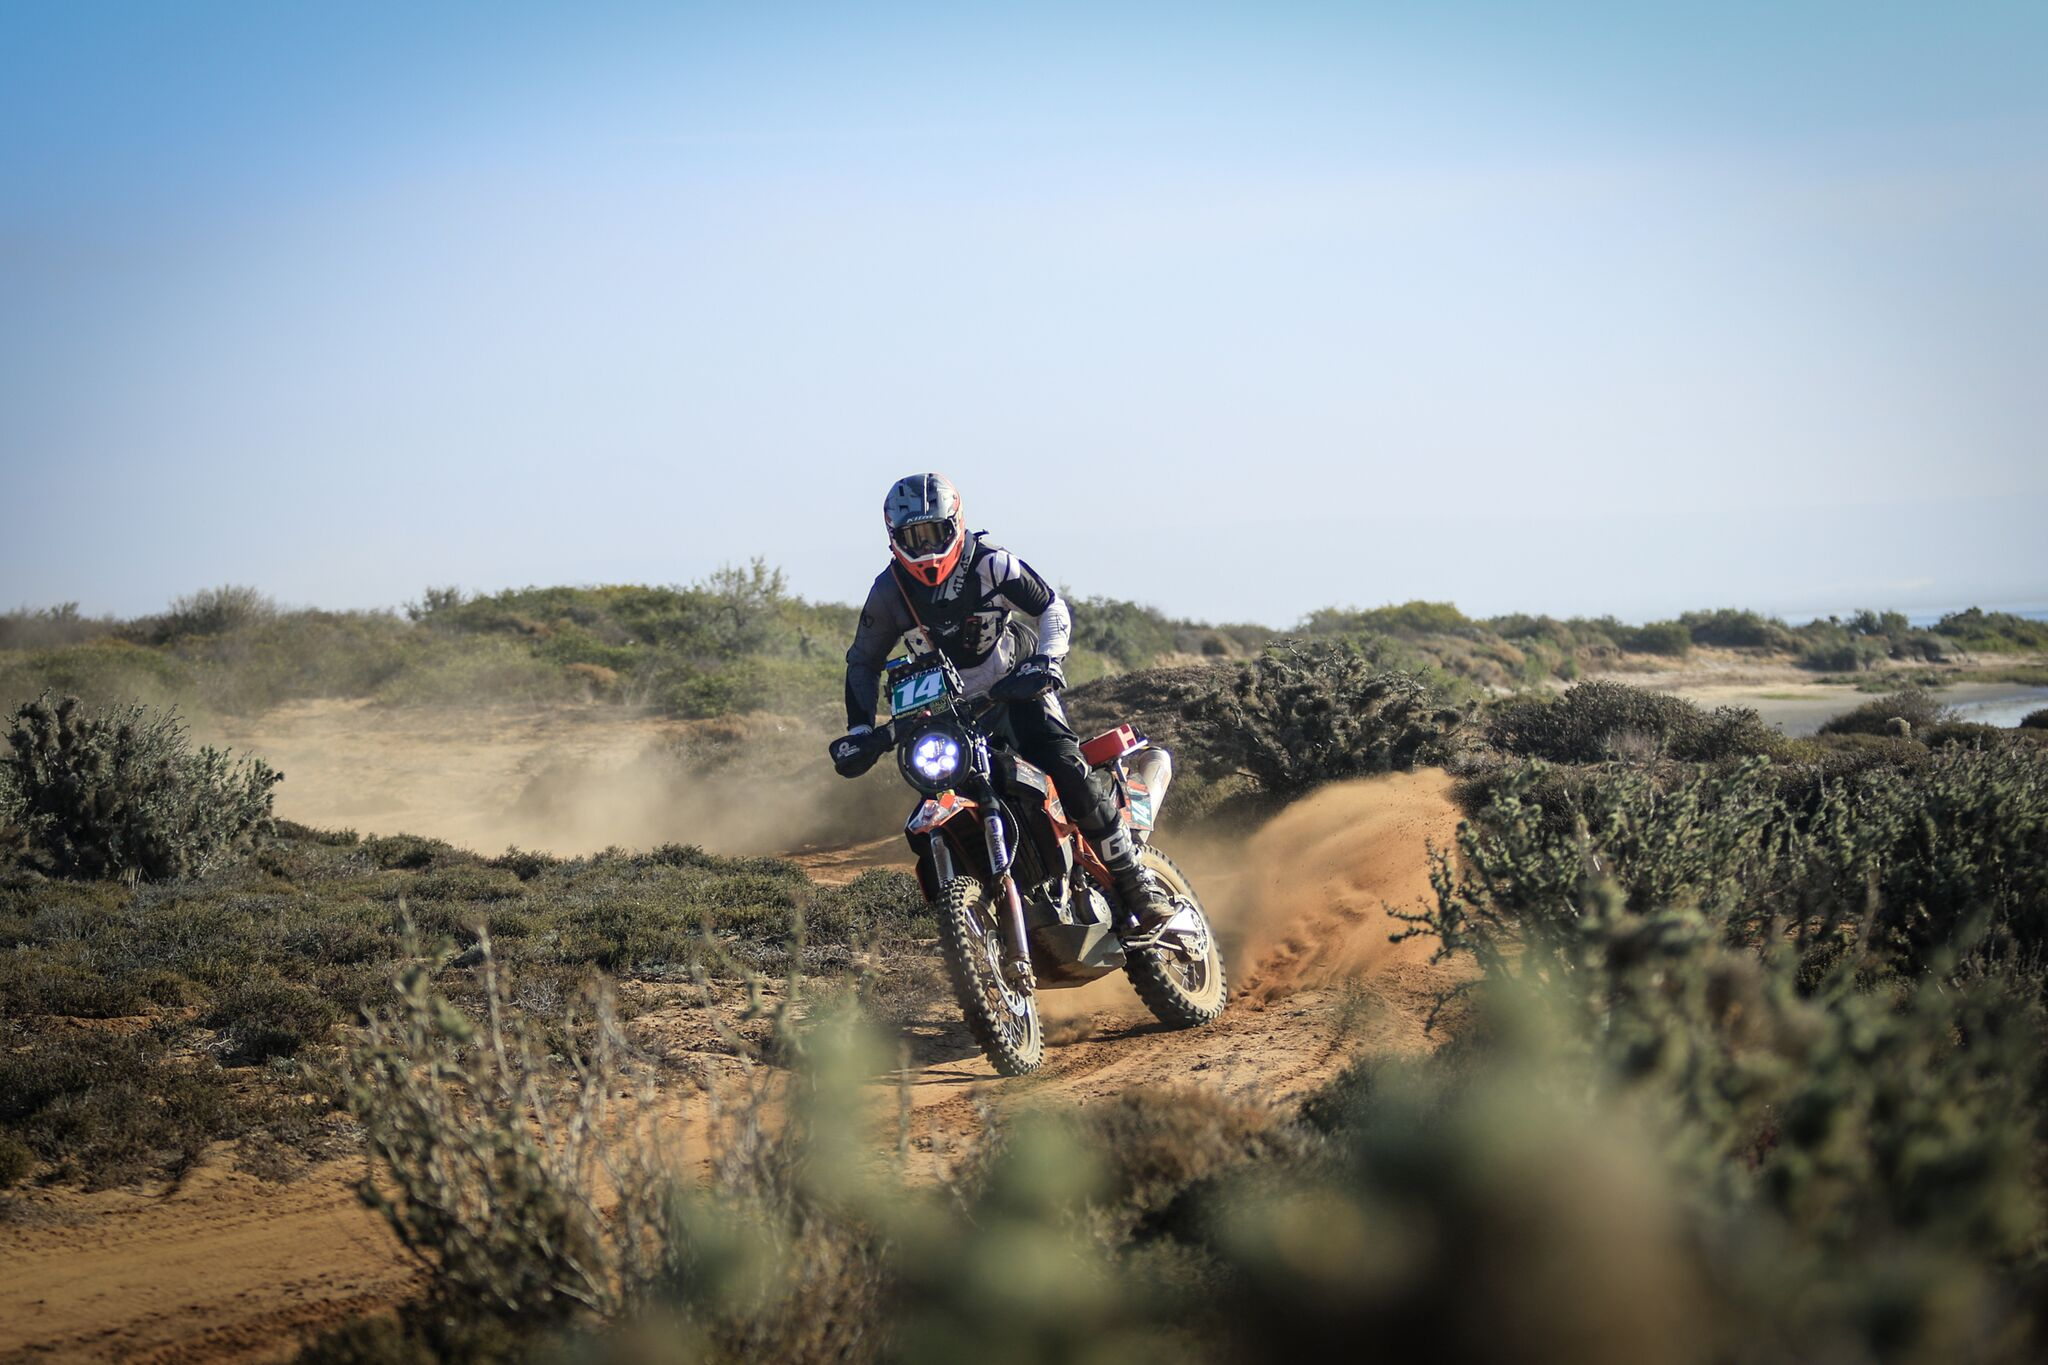 BAJA RALLY – SPECIAL STAGE 4 – Riders battle all the way to the finish line.